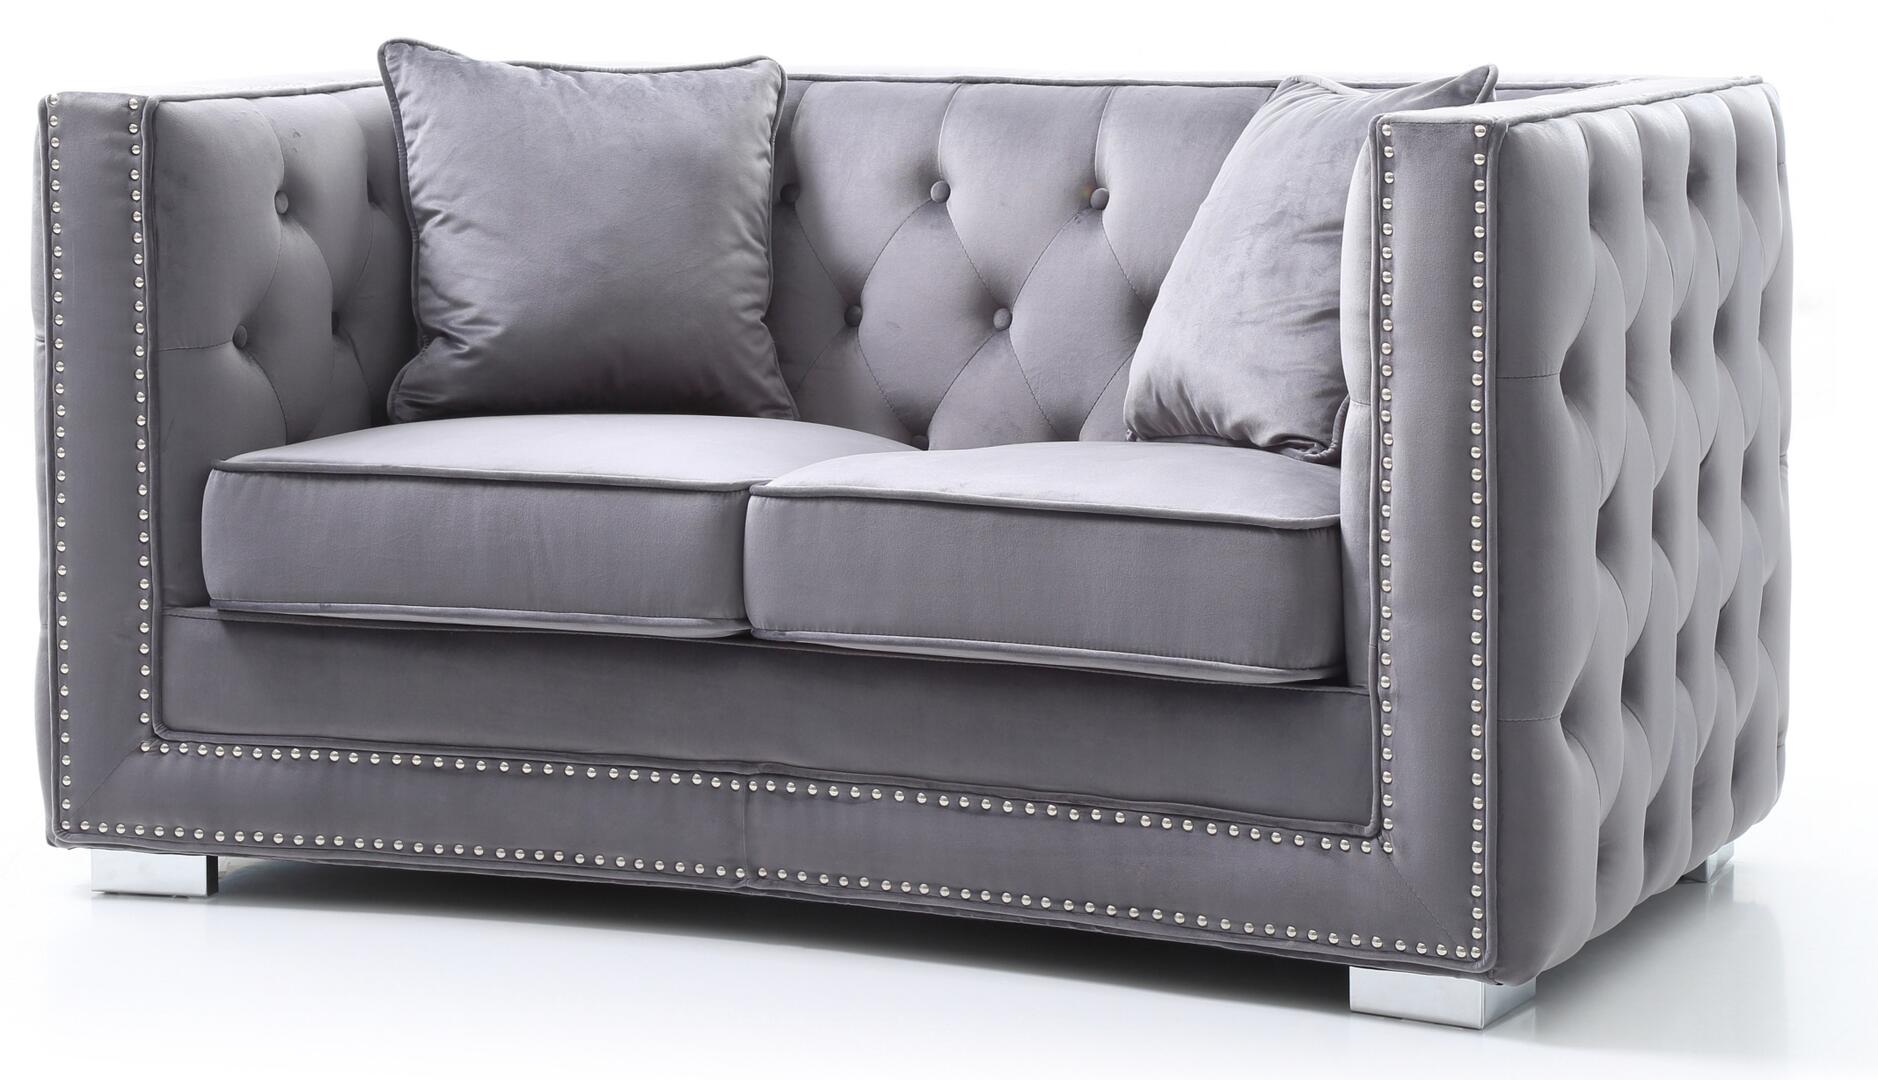 Awe Inspiring Glory Furniture G800L Caraccident5 Cool Chair Designs And Ideas Caraccident5Info